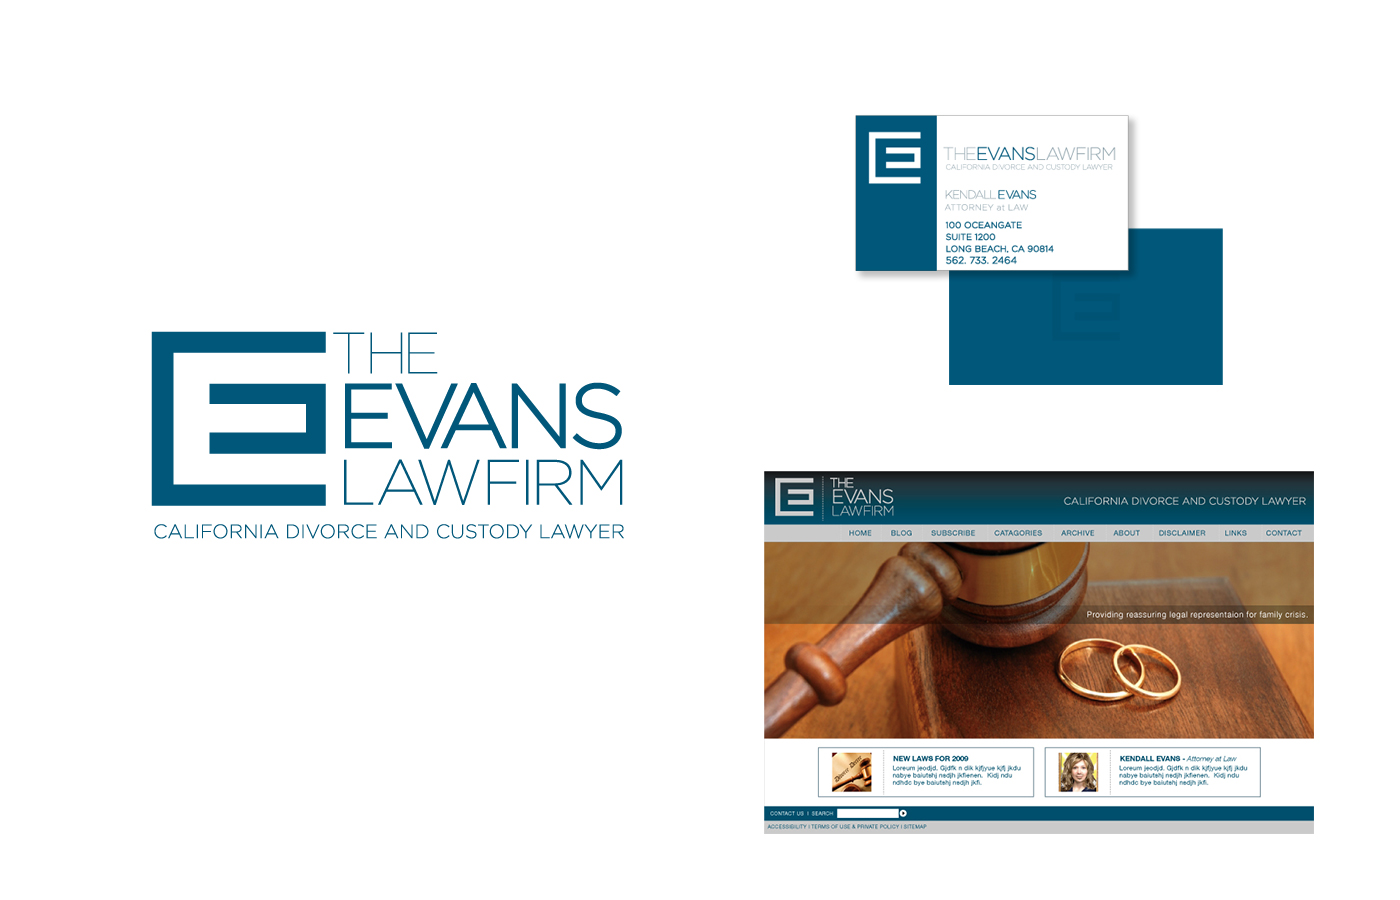 Evans Law Firm